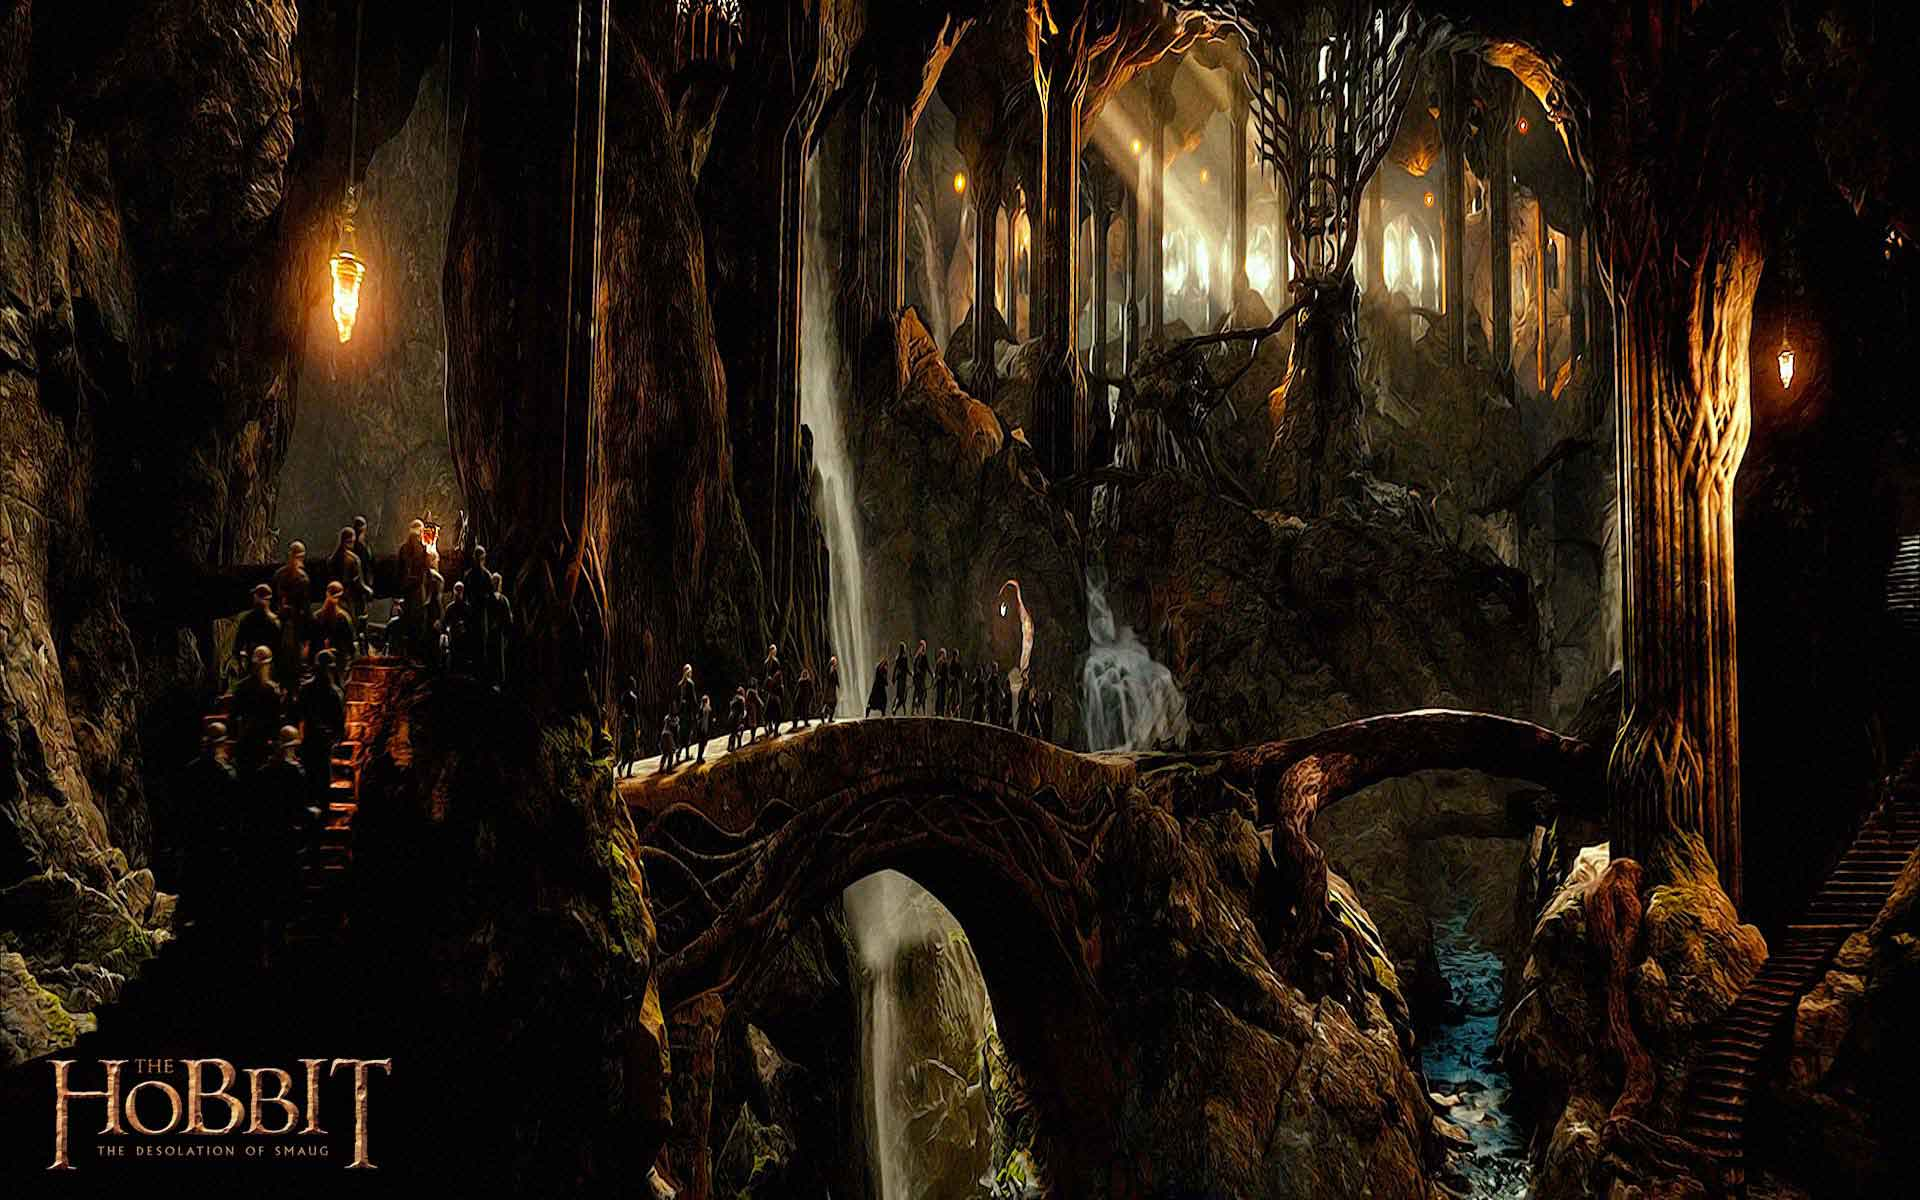 the hobbit desolation of smaug wallpapers hd backgrounds1jpg 1920x1200